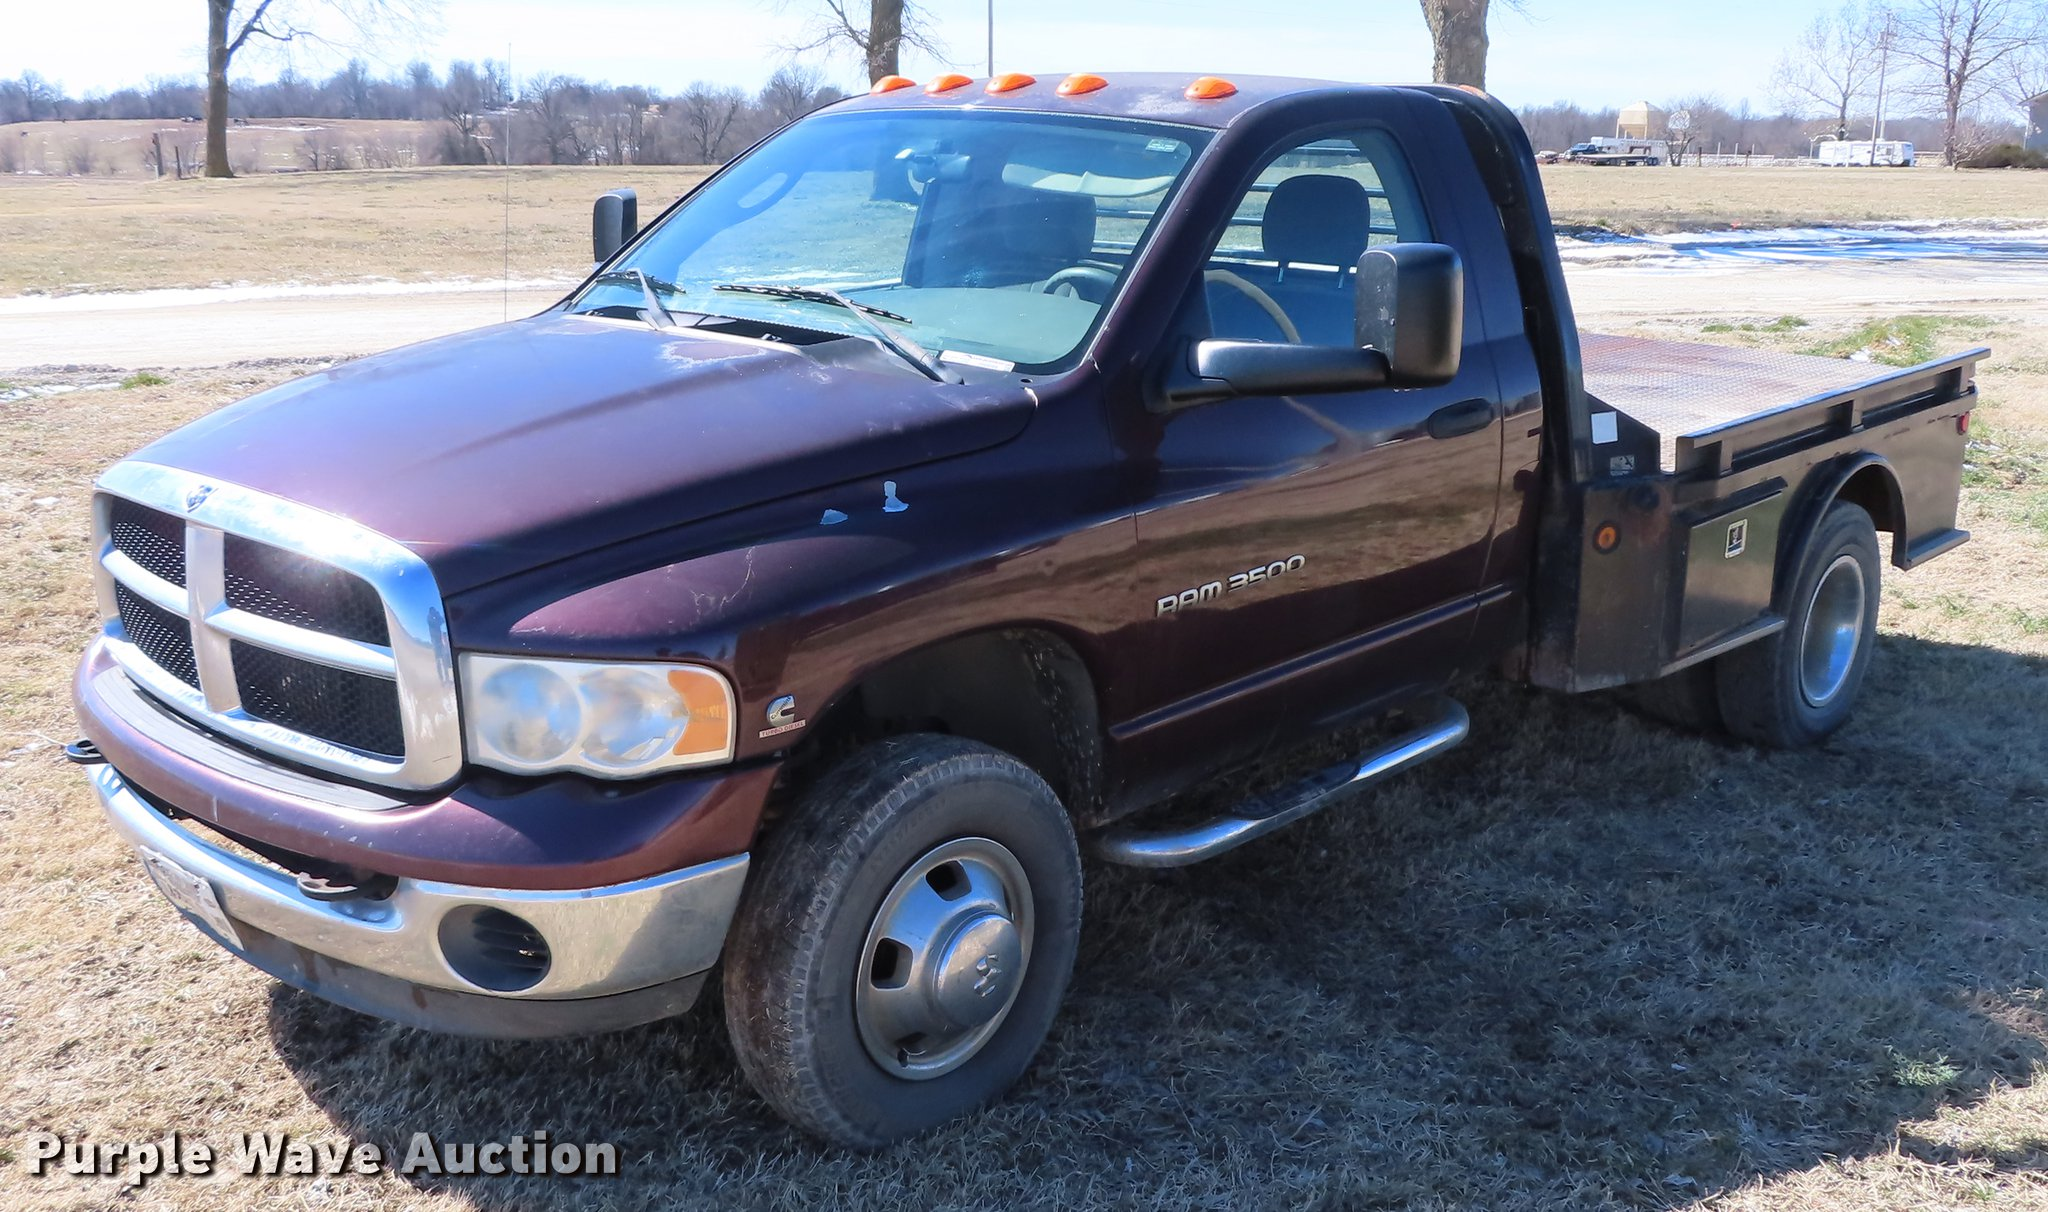 2004 Dodge Ram 3500 Flatbed Pickup Truck In Galena Ks Item Dn9088 Sold Purple Wave